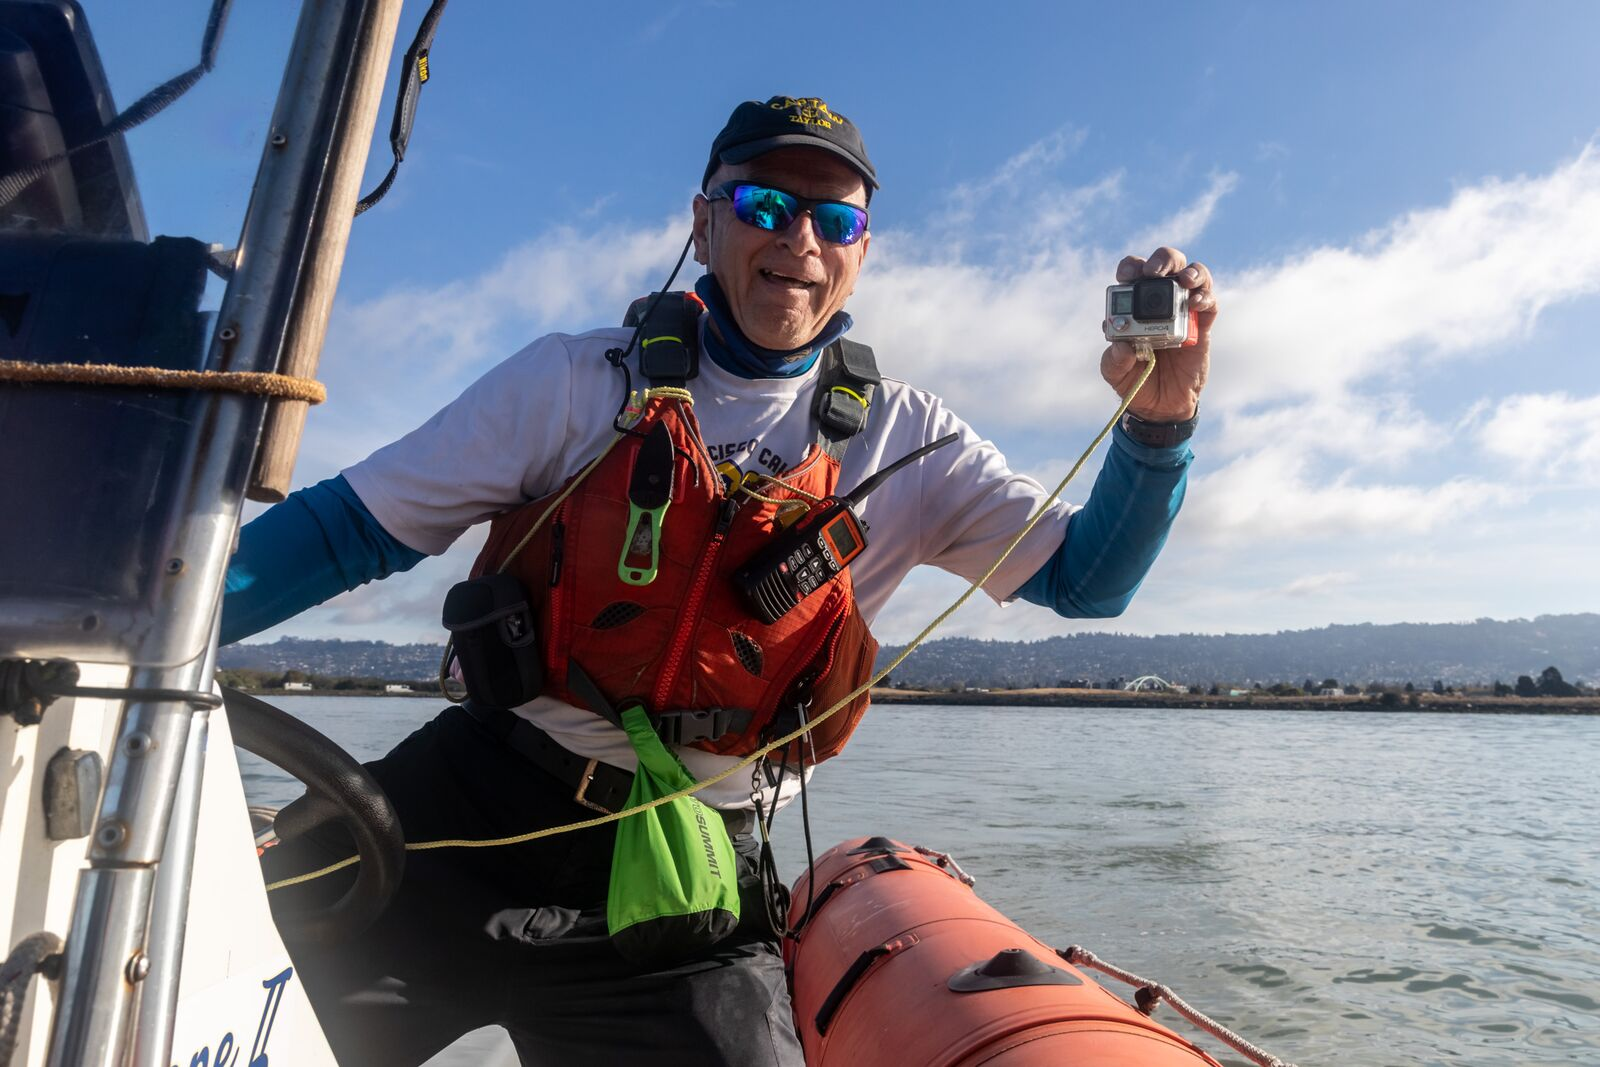 Captain Taylor Hurt uses a waterproof camera to document swimmers in the South Sailing Basin at the Berkeley Marina on September 19, 2021. Credit: Kelly Sullivan